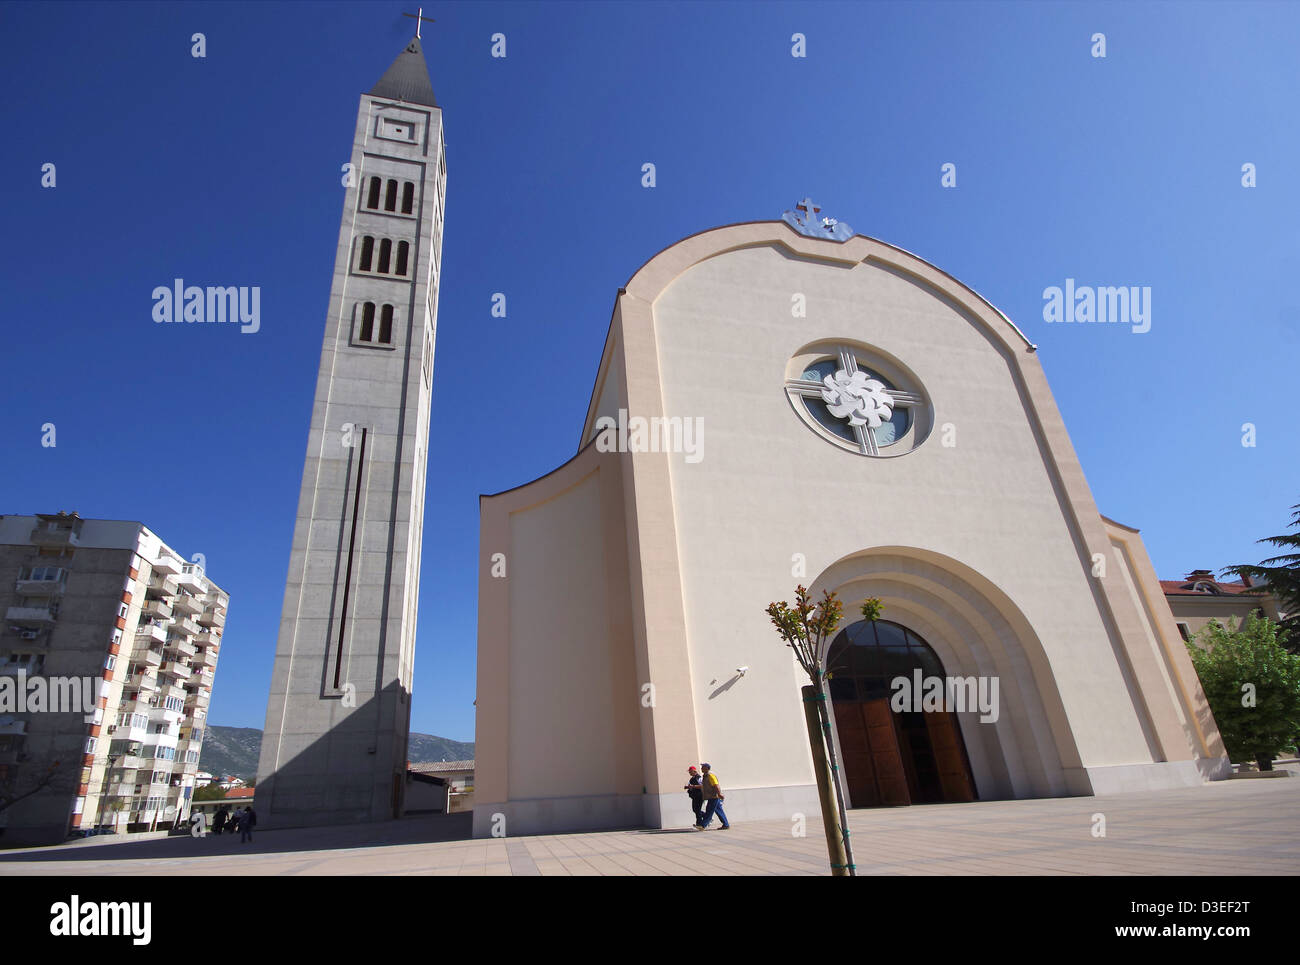 Franevachka church. Catholic congregation. Mostar in Bosnia and Herzegovina. - Stock Image